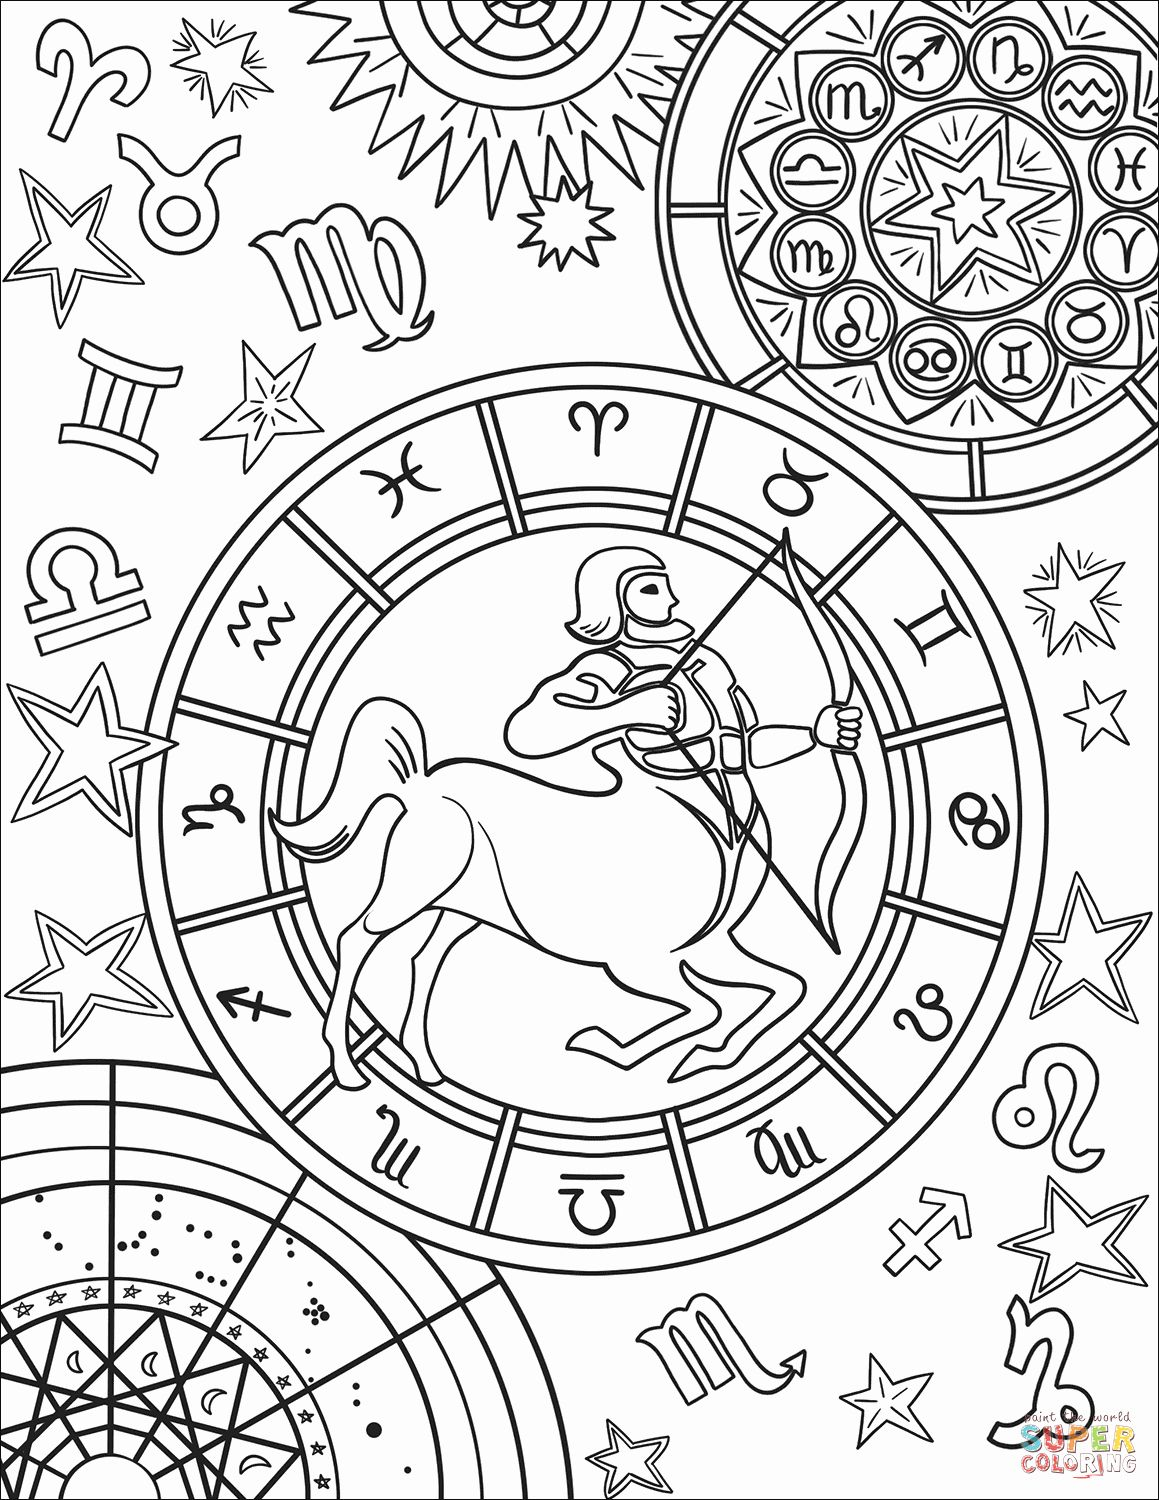 coloring sign history coloring pages printable elegant sagittarius sign coloring